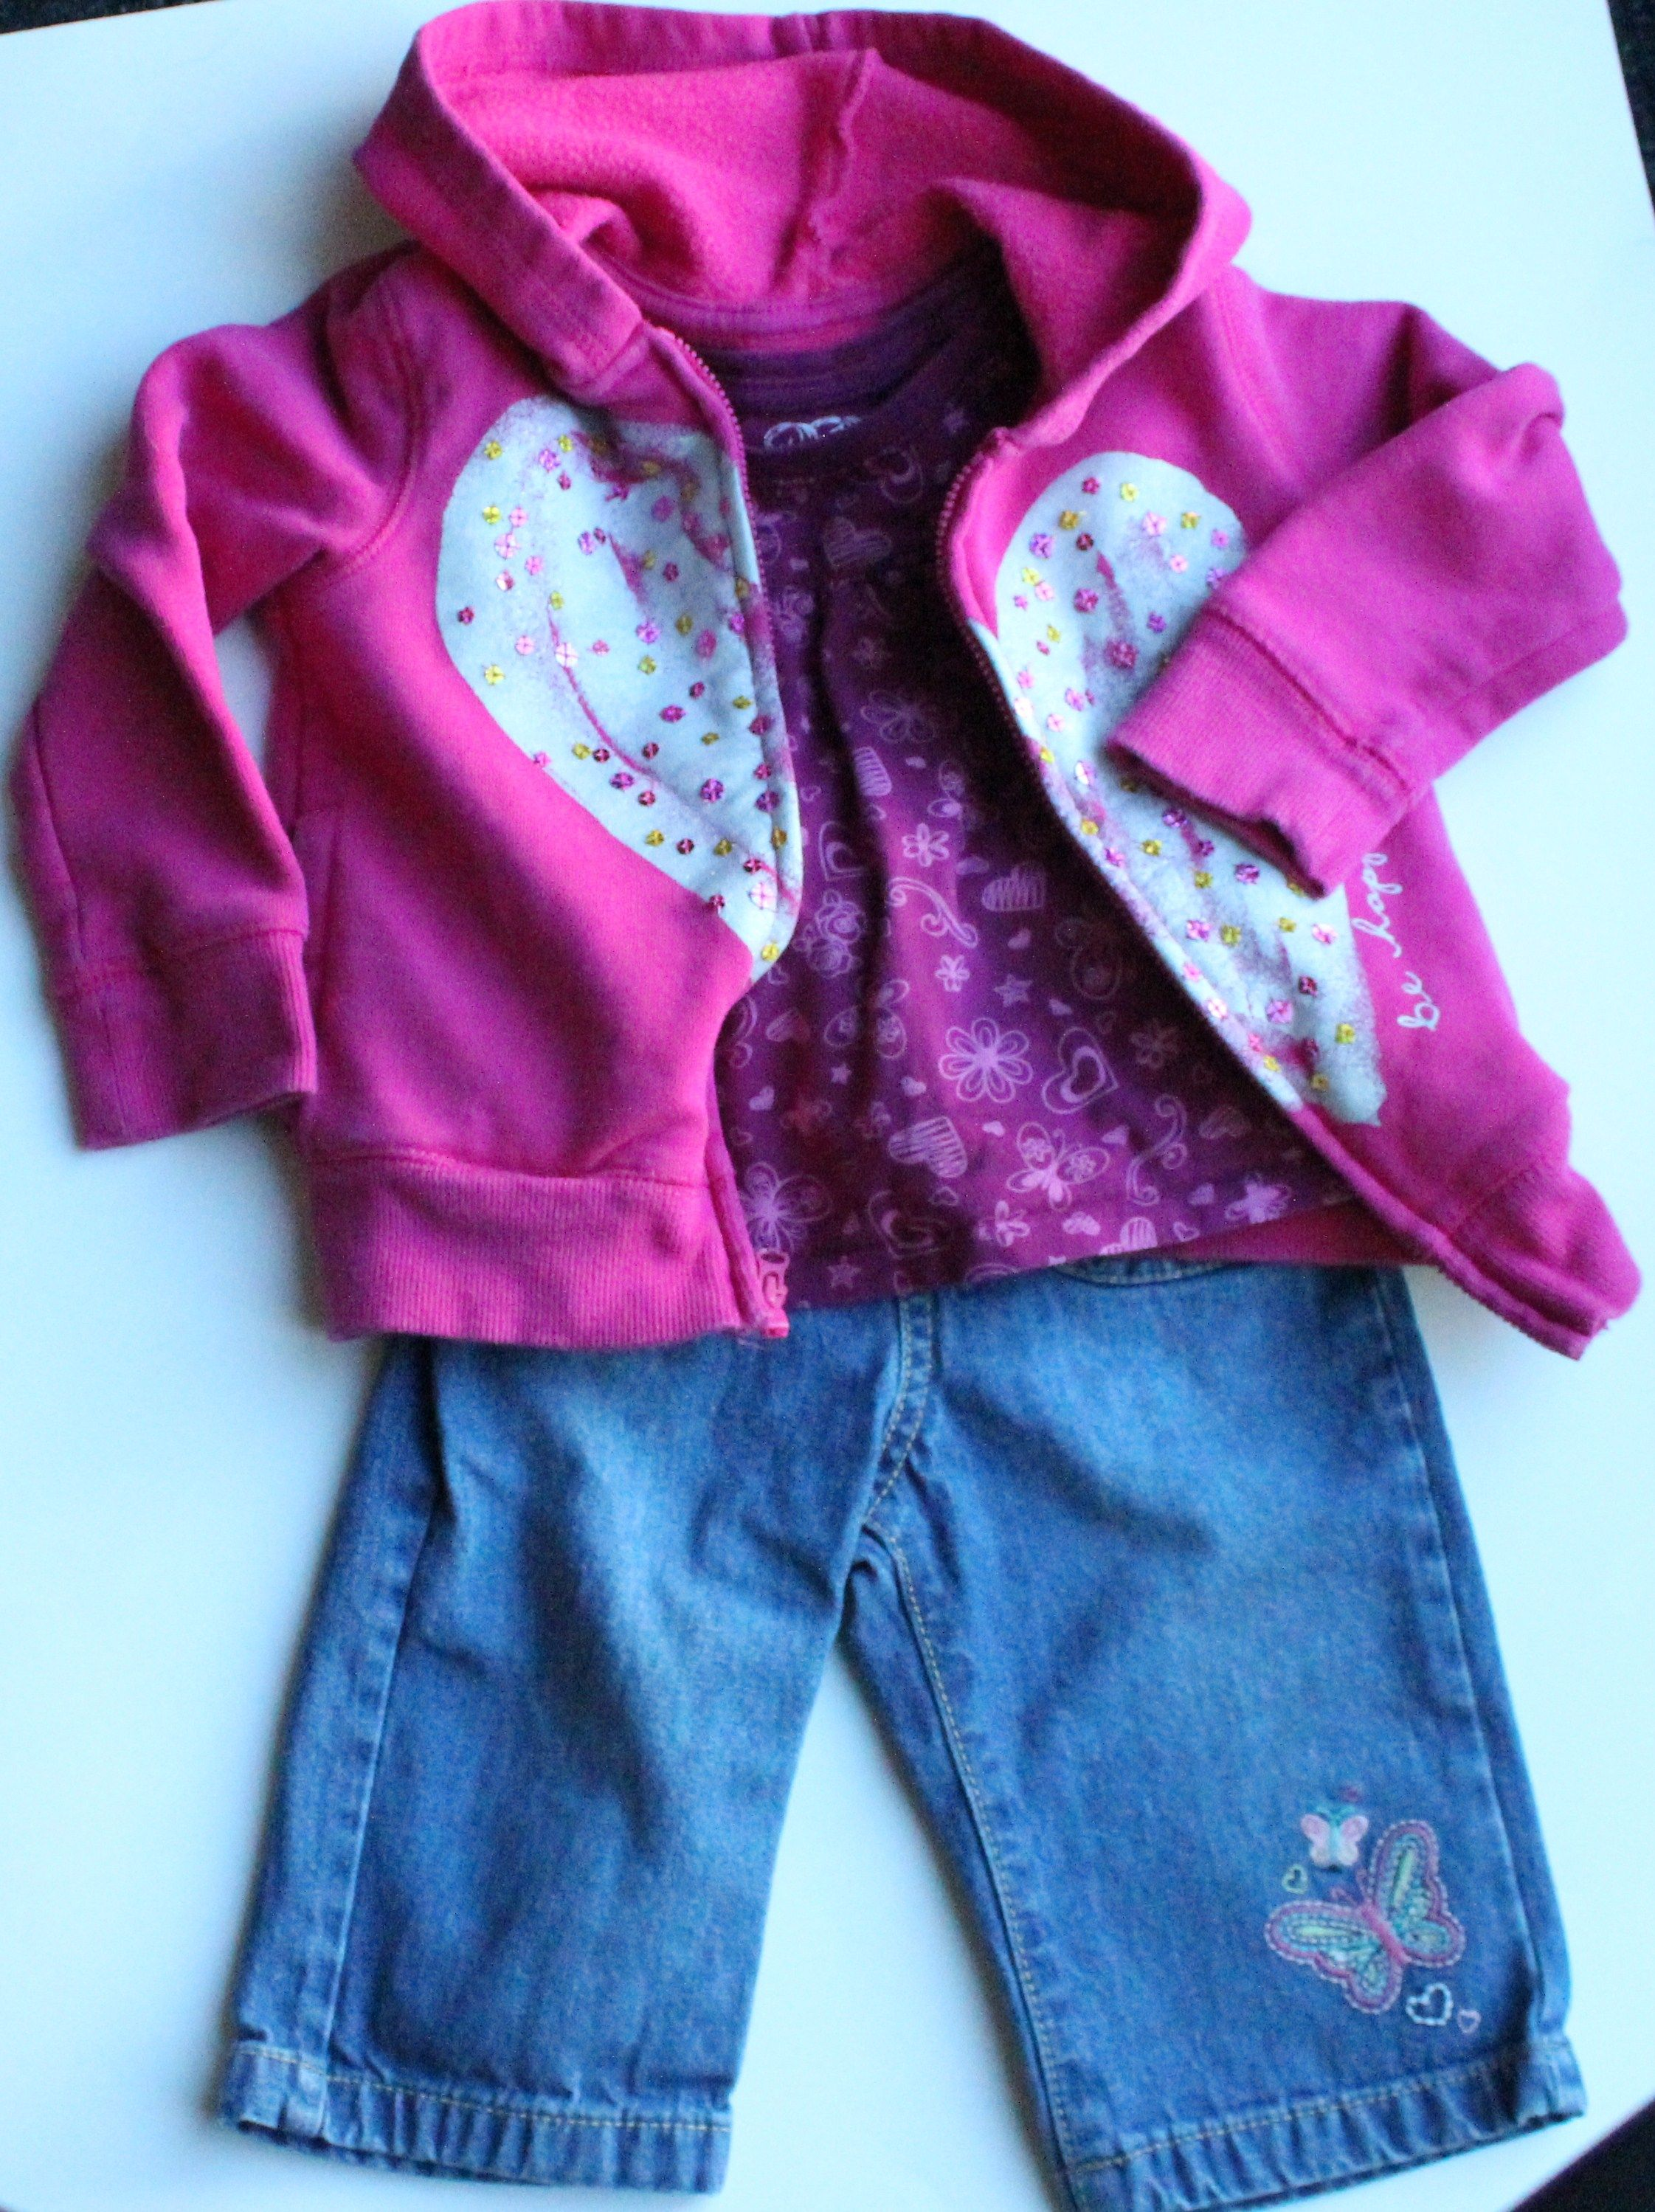 Casual Baby Girl Outfit Osh Kosh Jeans and Hoo Children s Place